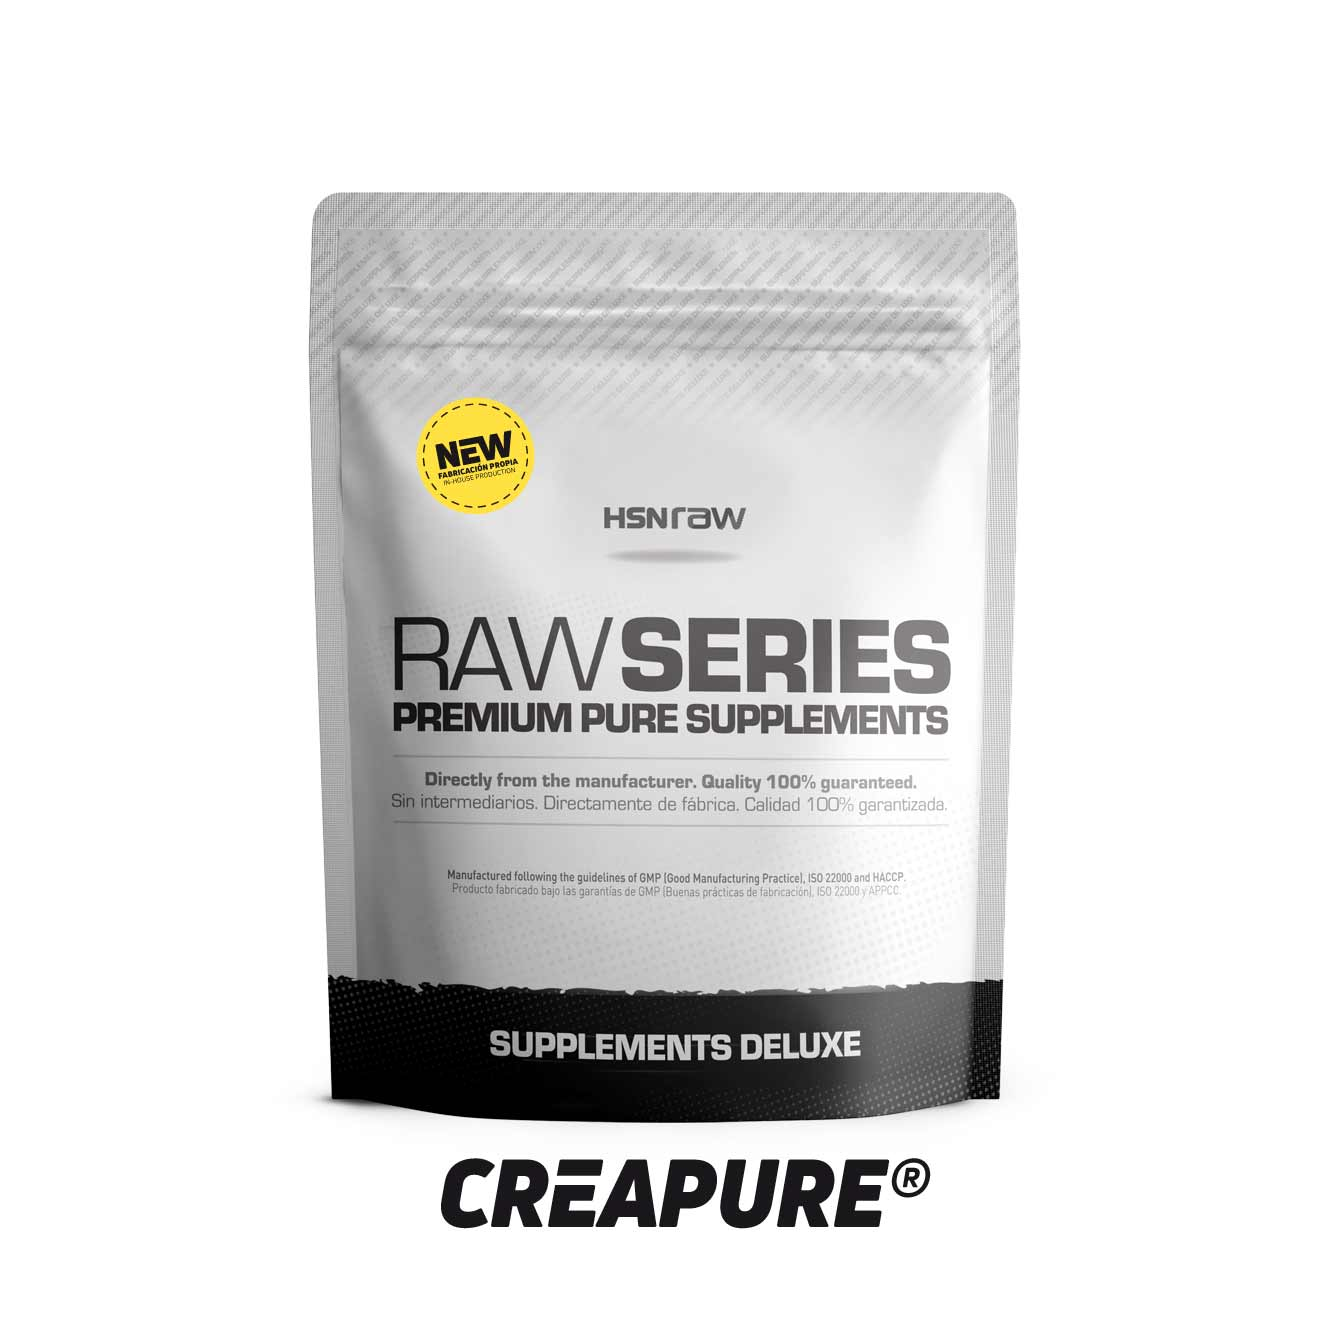 Creatine Excell (Creapure®)